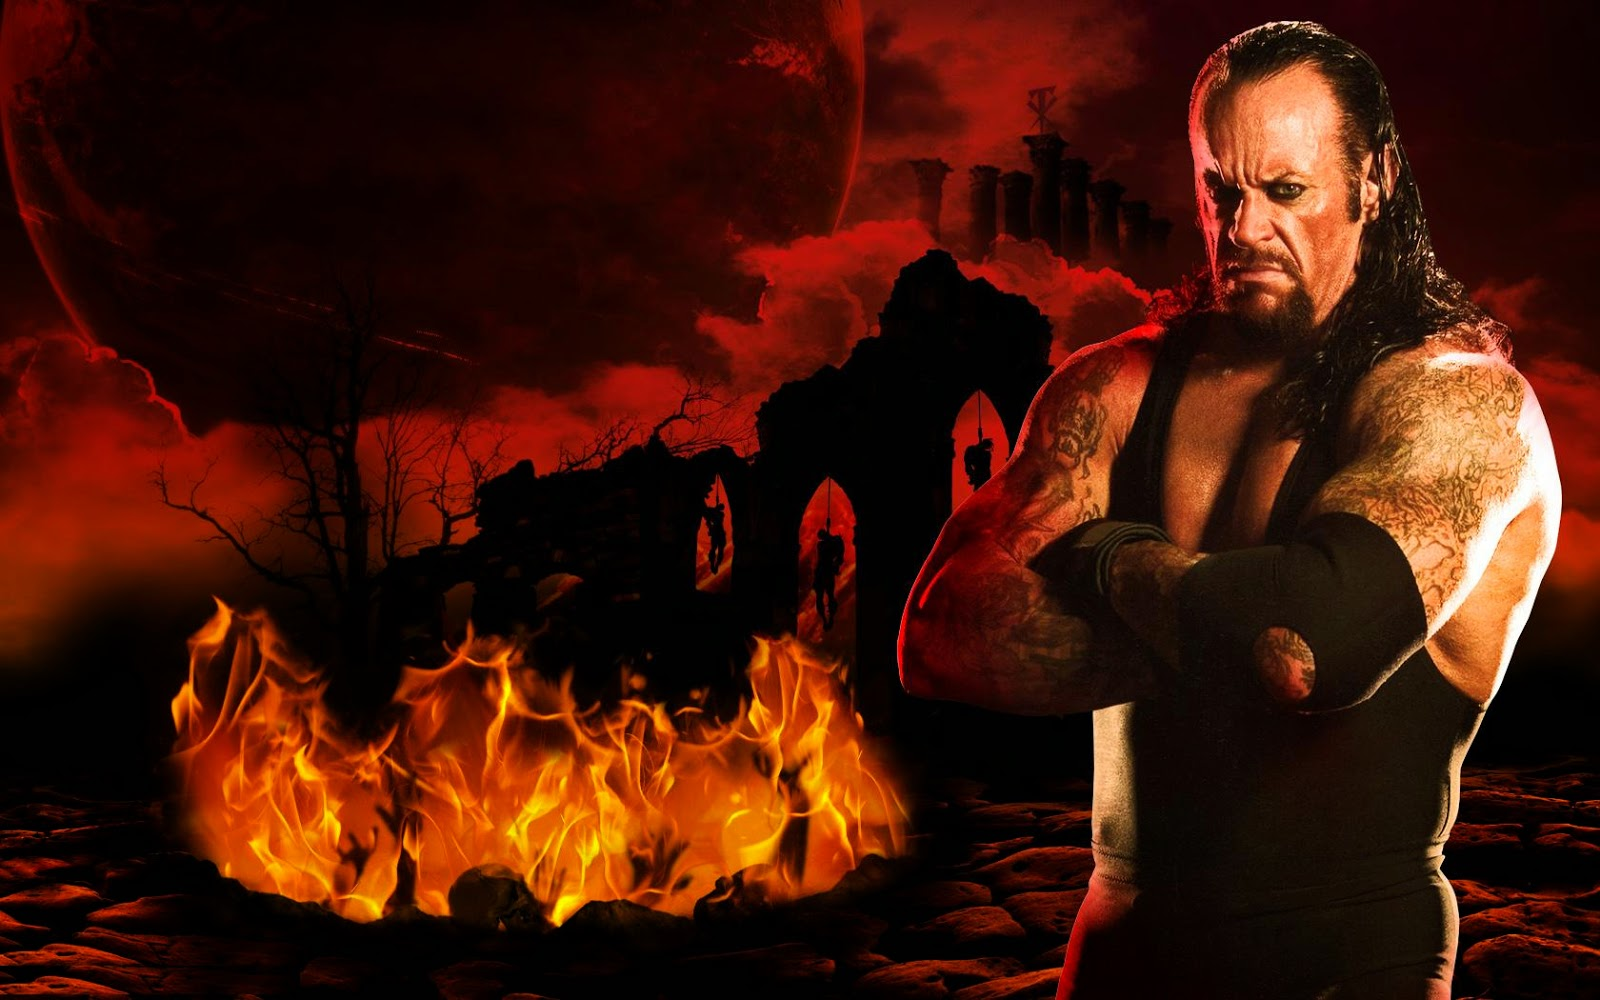 Undertaker Hd Wallpapers Free Download WWE HD WALLPAPER